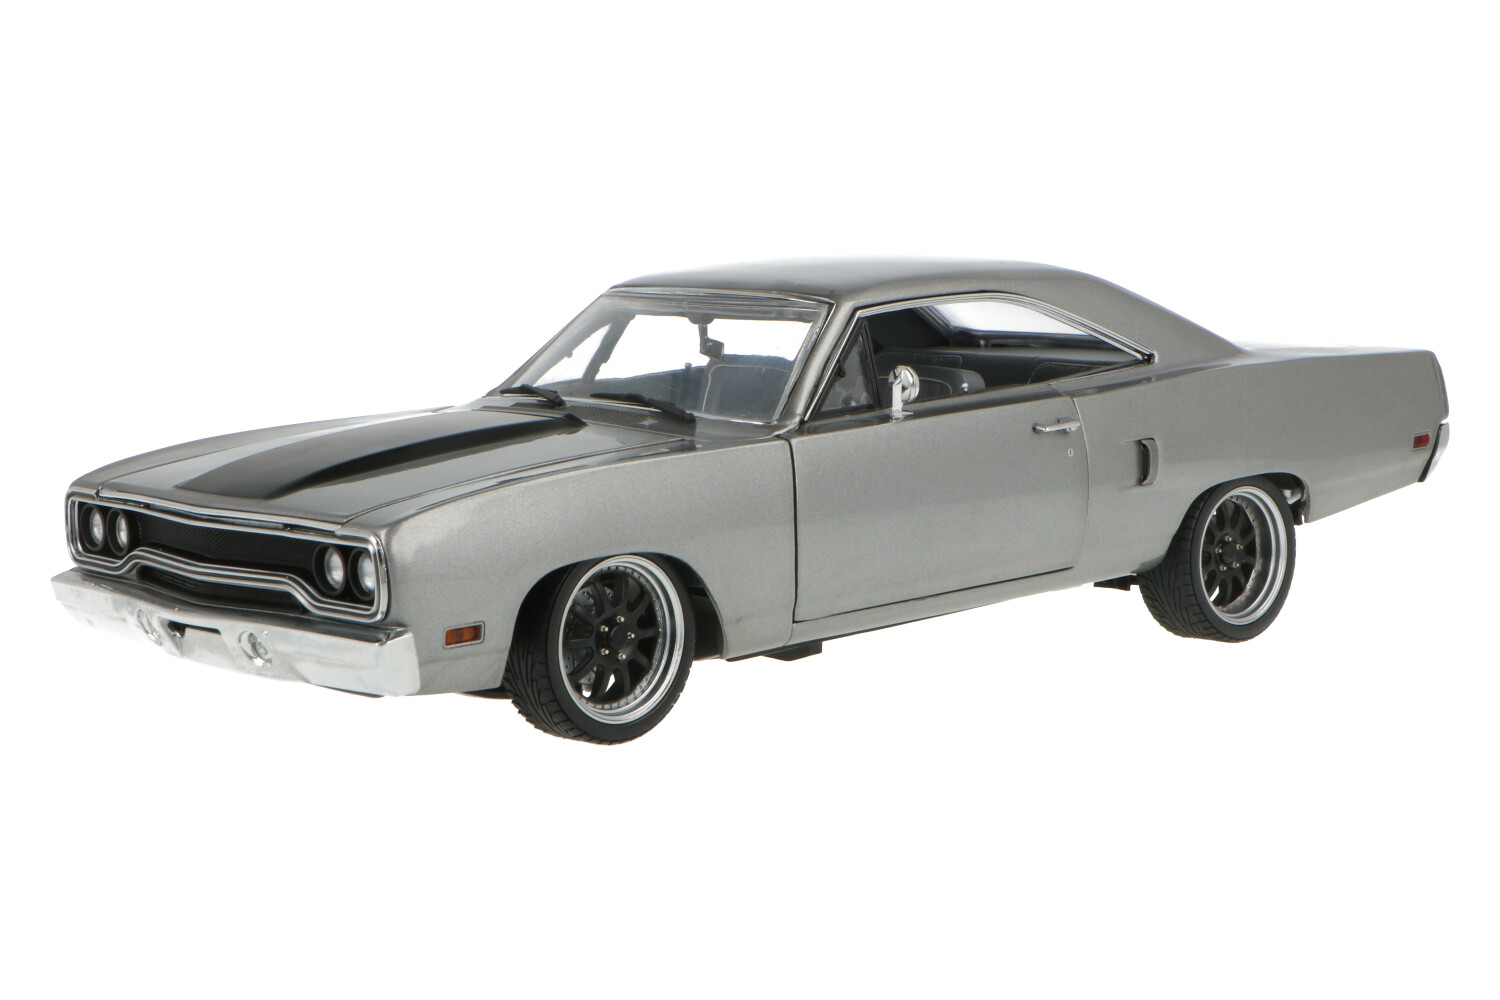 Plymouth Charger Road Runner - Modelauto schaal 1:18